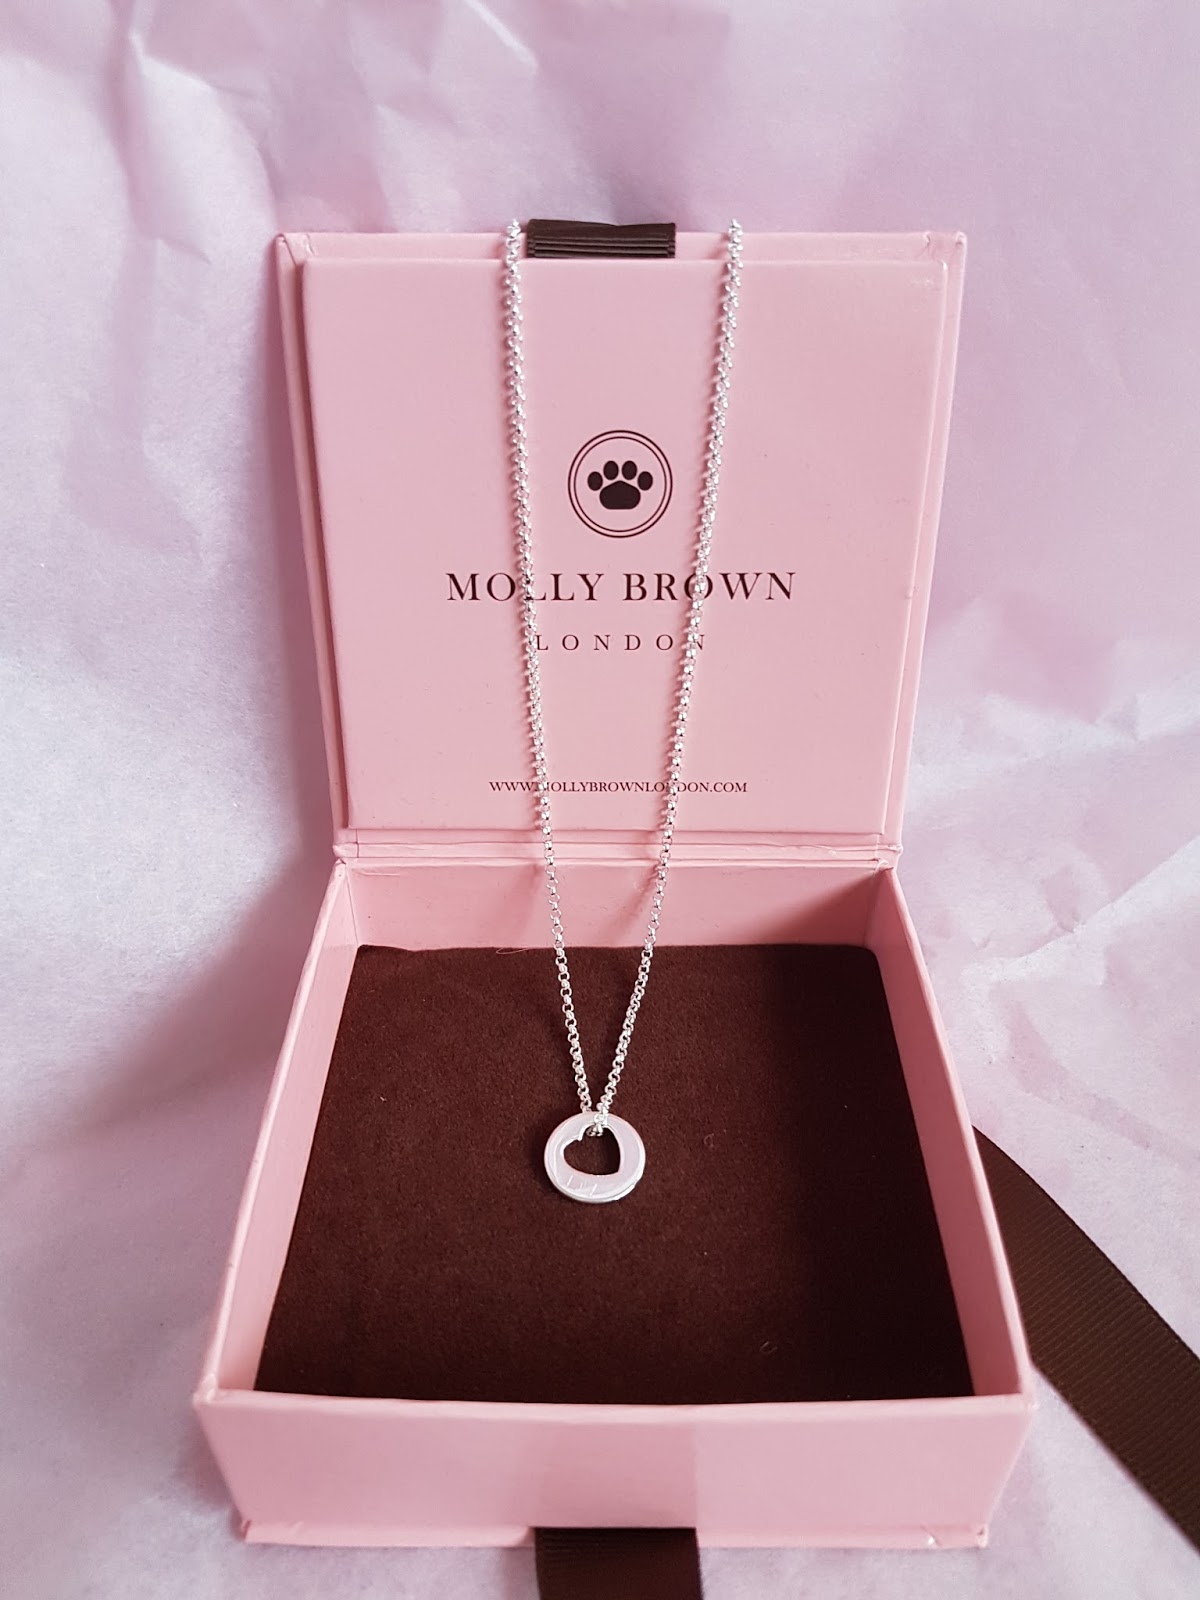 The Personalised Hope Open Heart Necklace Costs 42 Which I Think Is Such An Amazing Price For This Everything So Lovely From Gift Bag